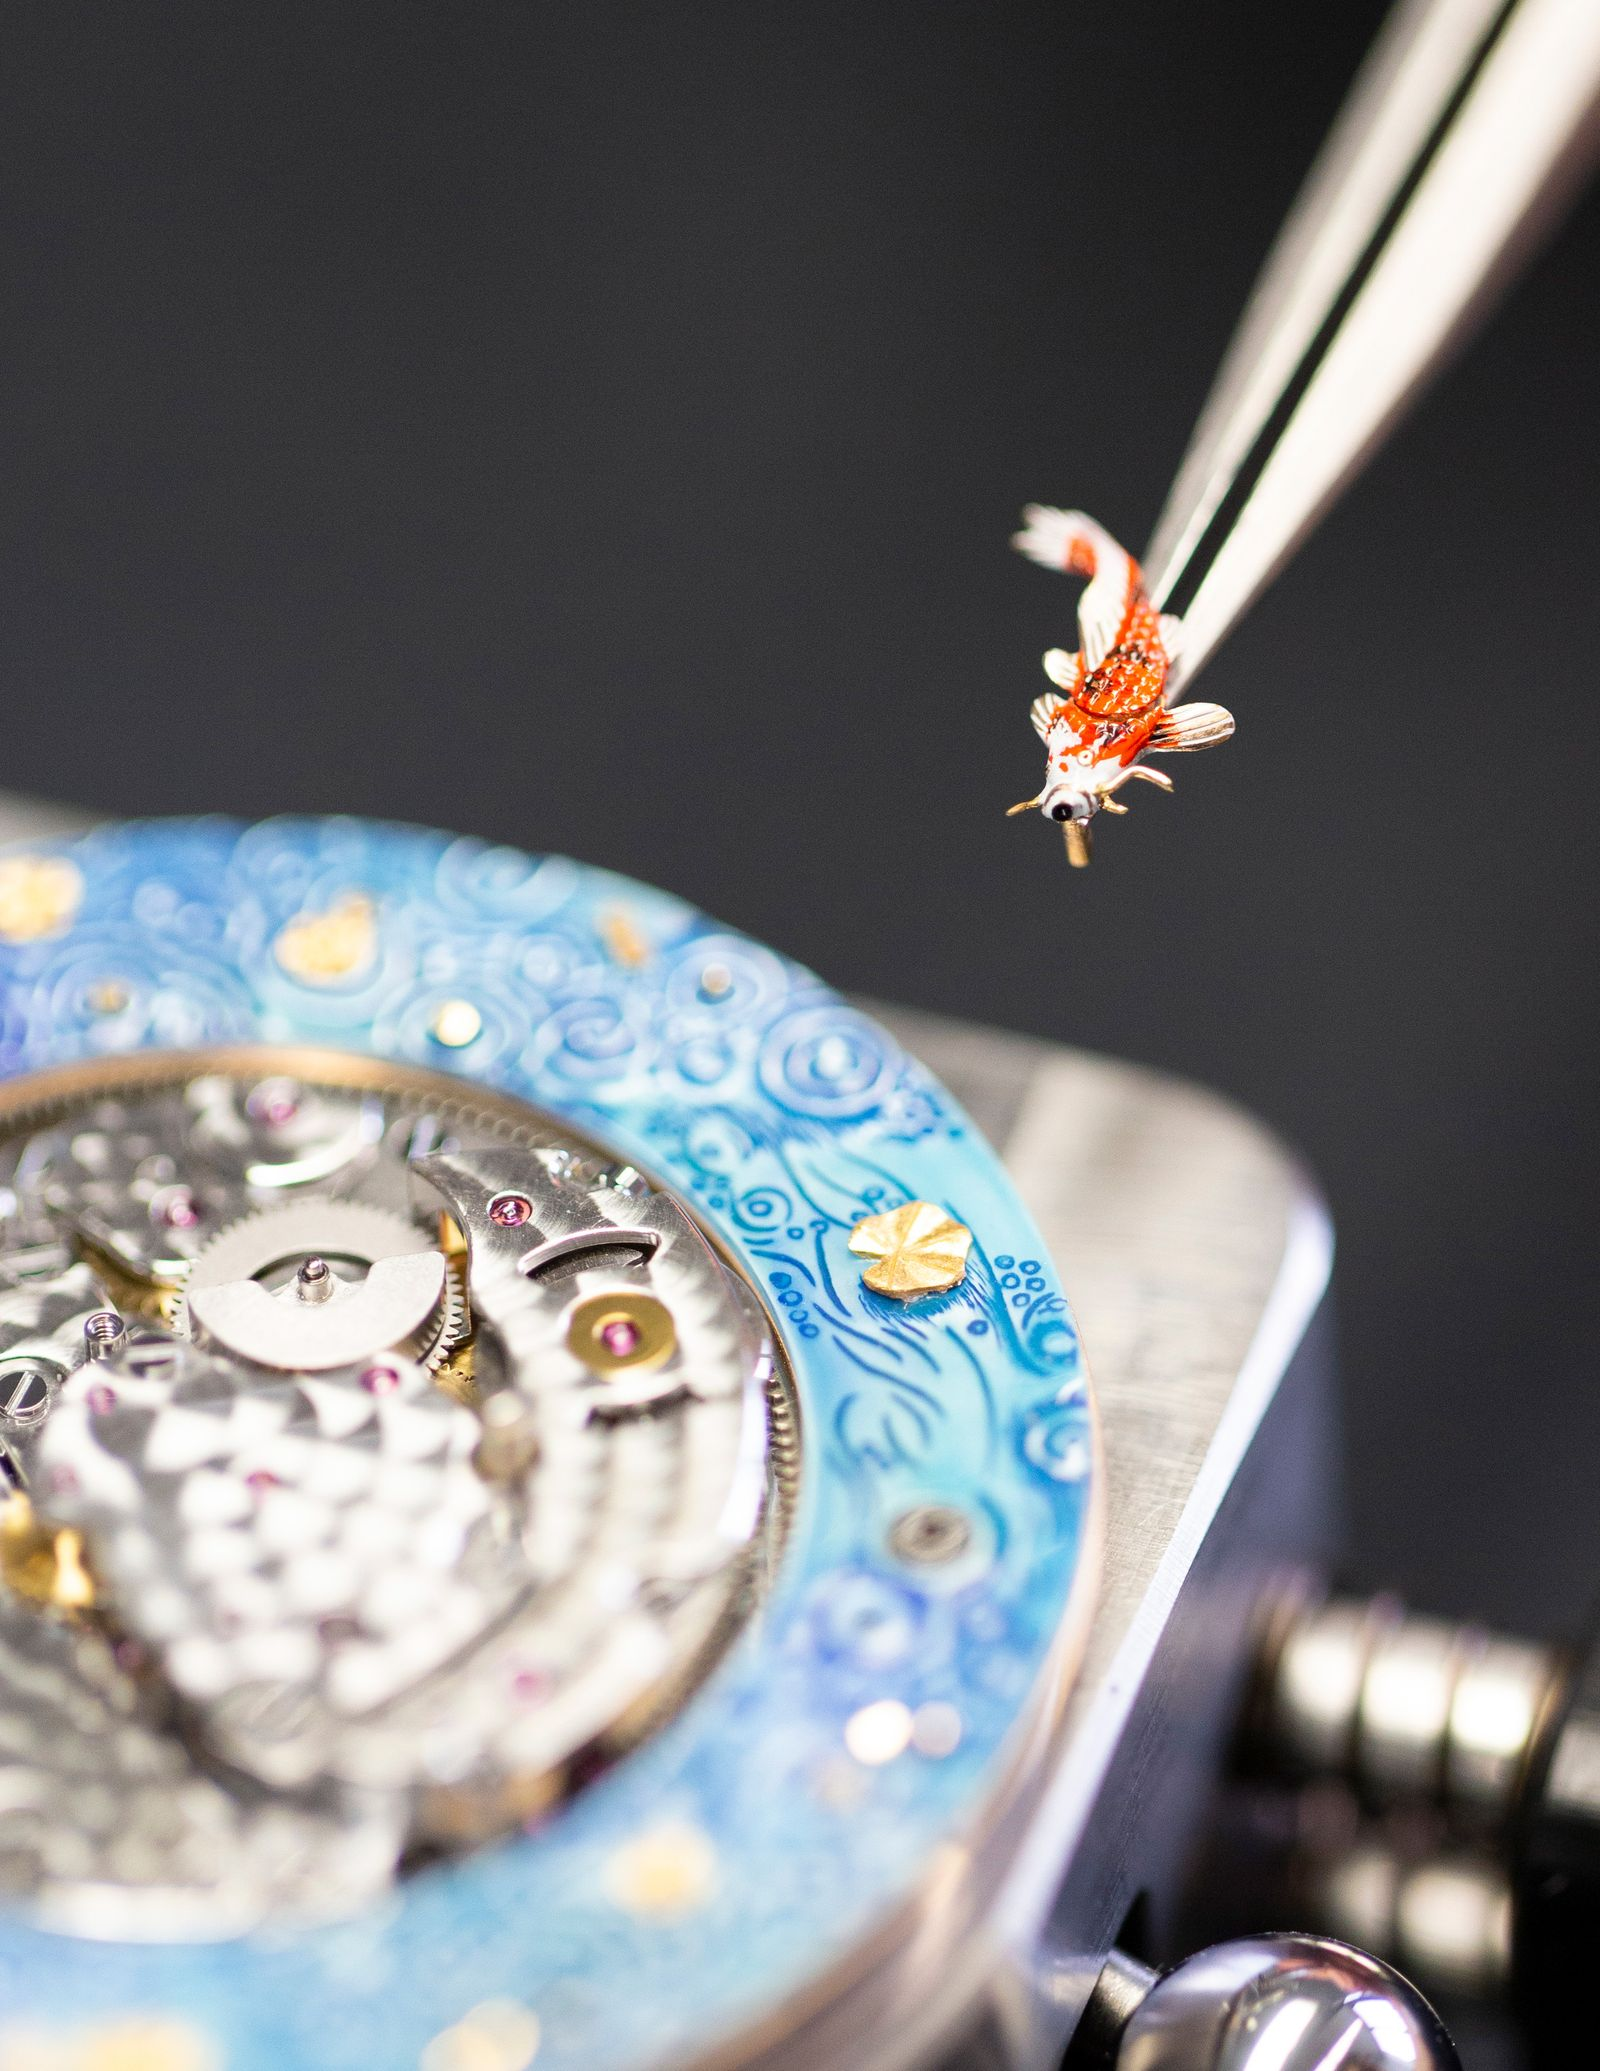 Jaquet Droz Magic Lotus Automaton (10)